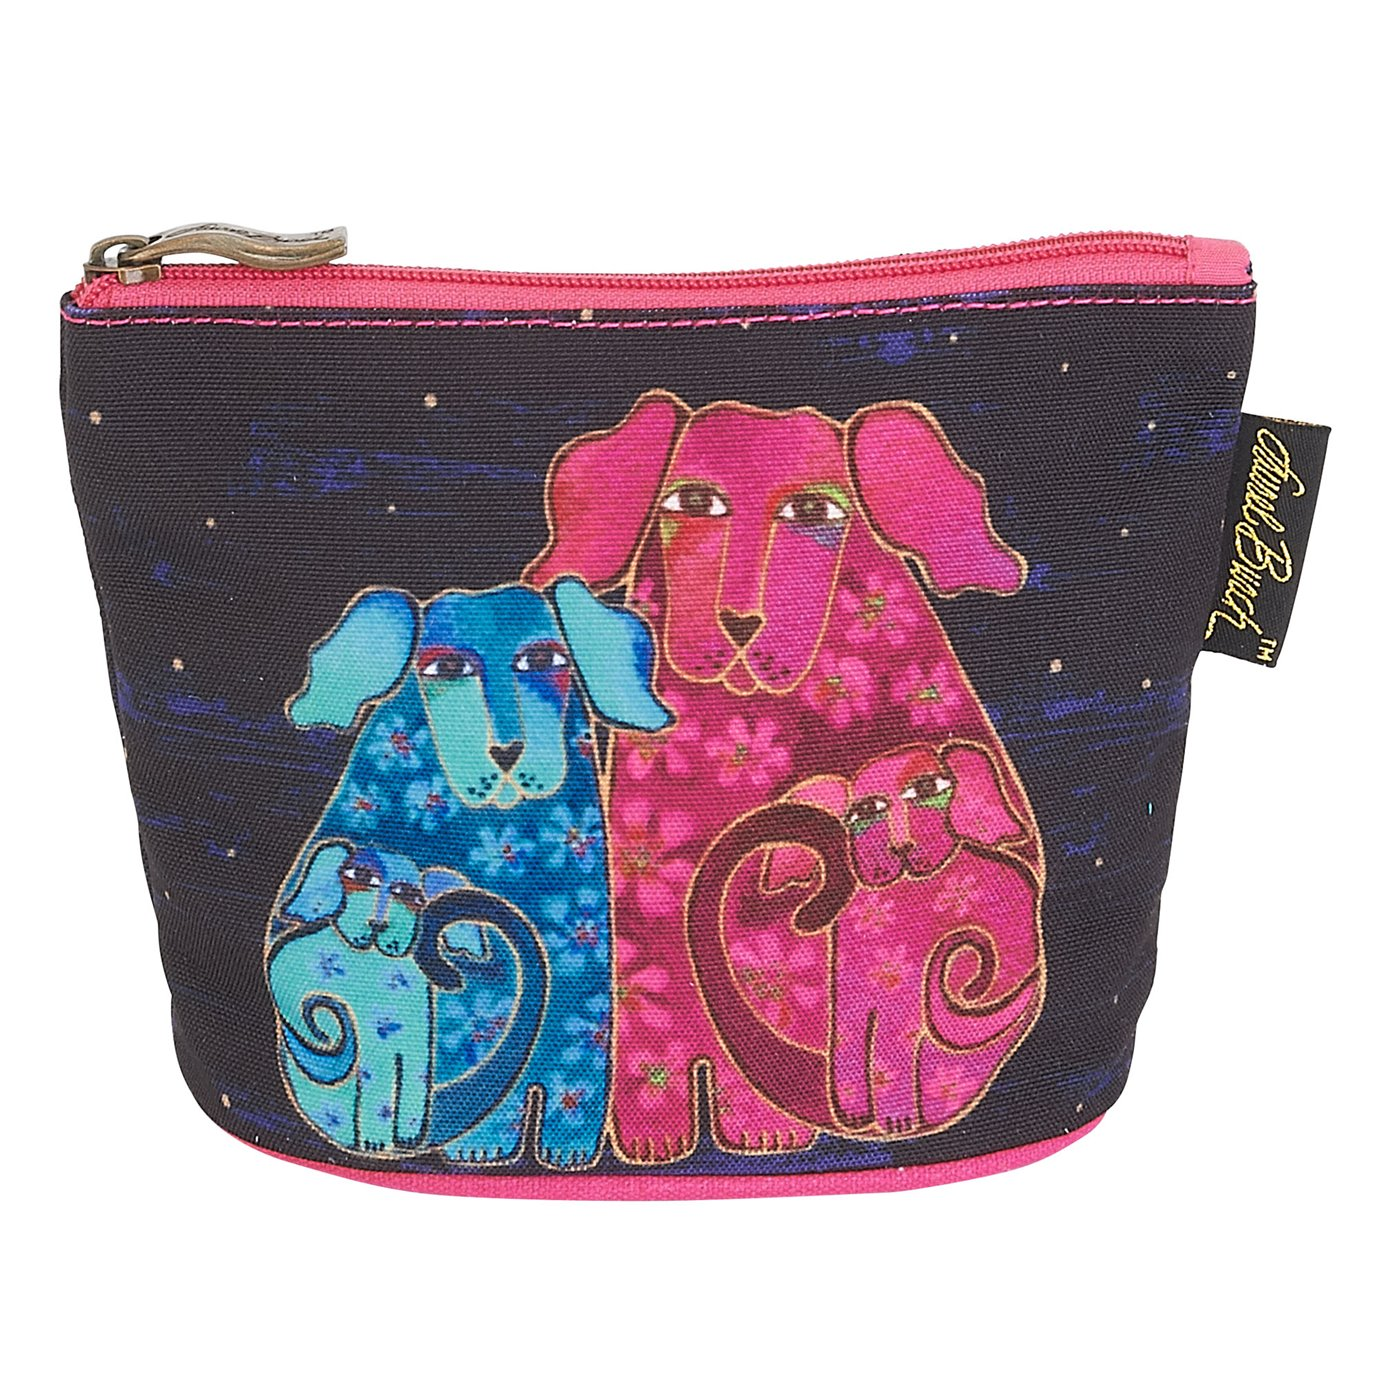 Laurel Burch Canine Friends Mini Cosmetic Bag - dog family